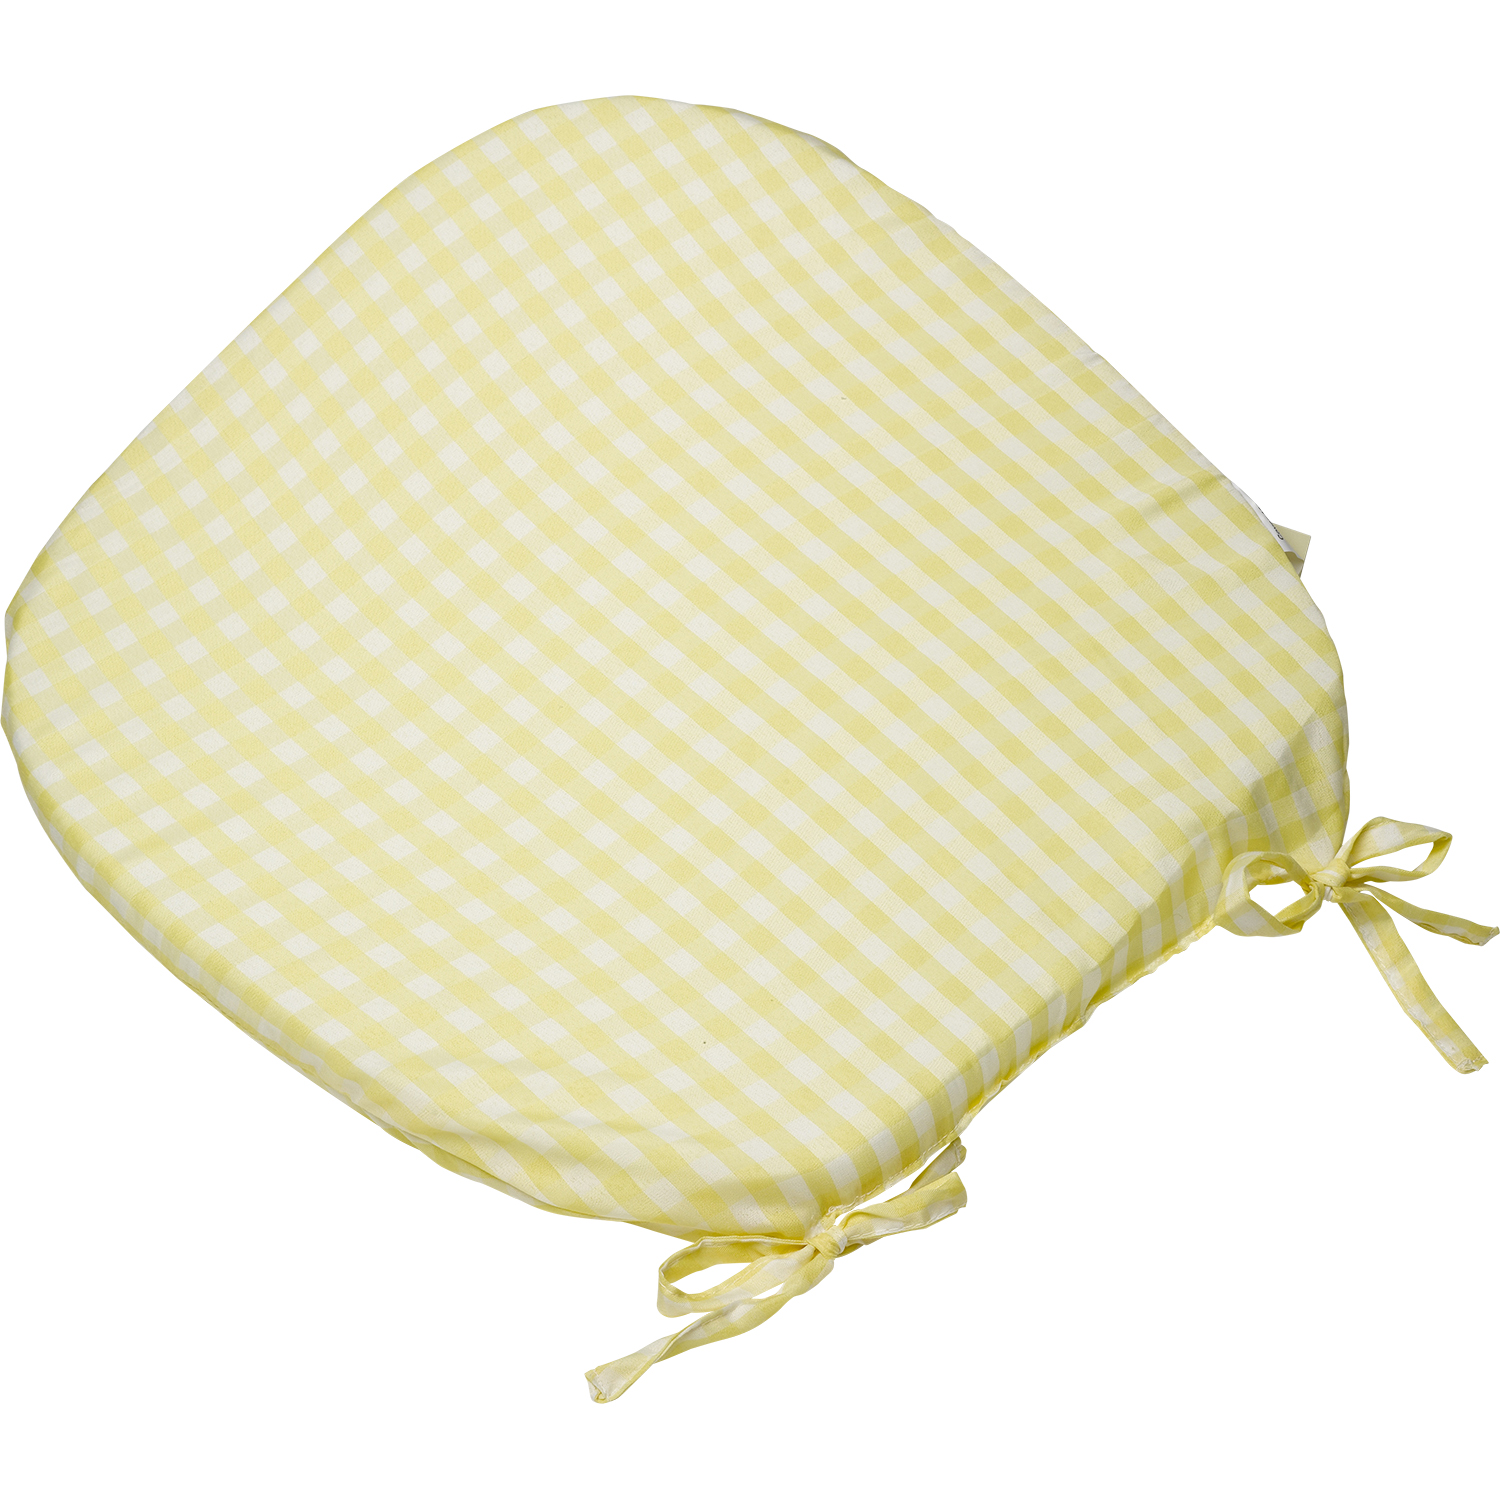 Tie on Rounded Gingham Chair Seat Pad Cushion Outdoor Garden Dining ...